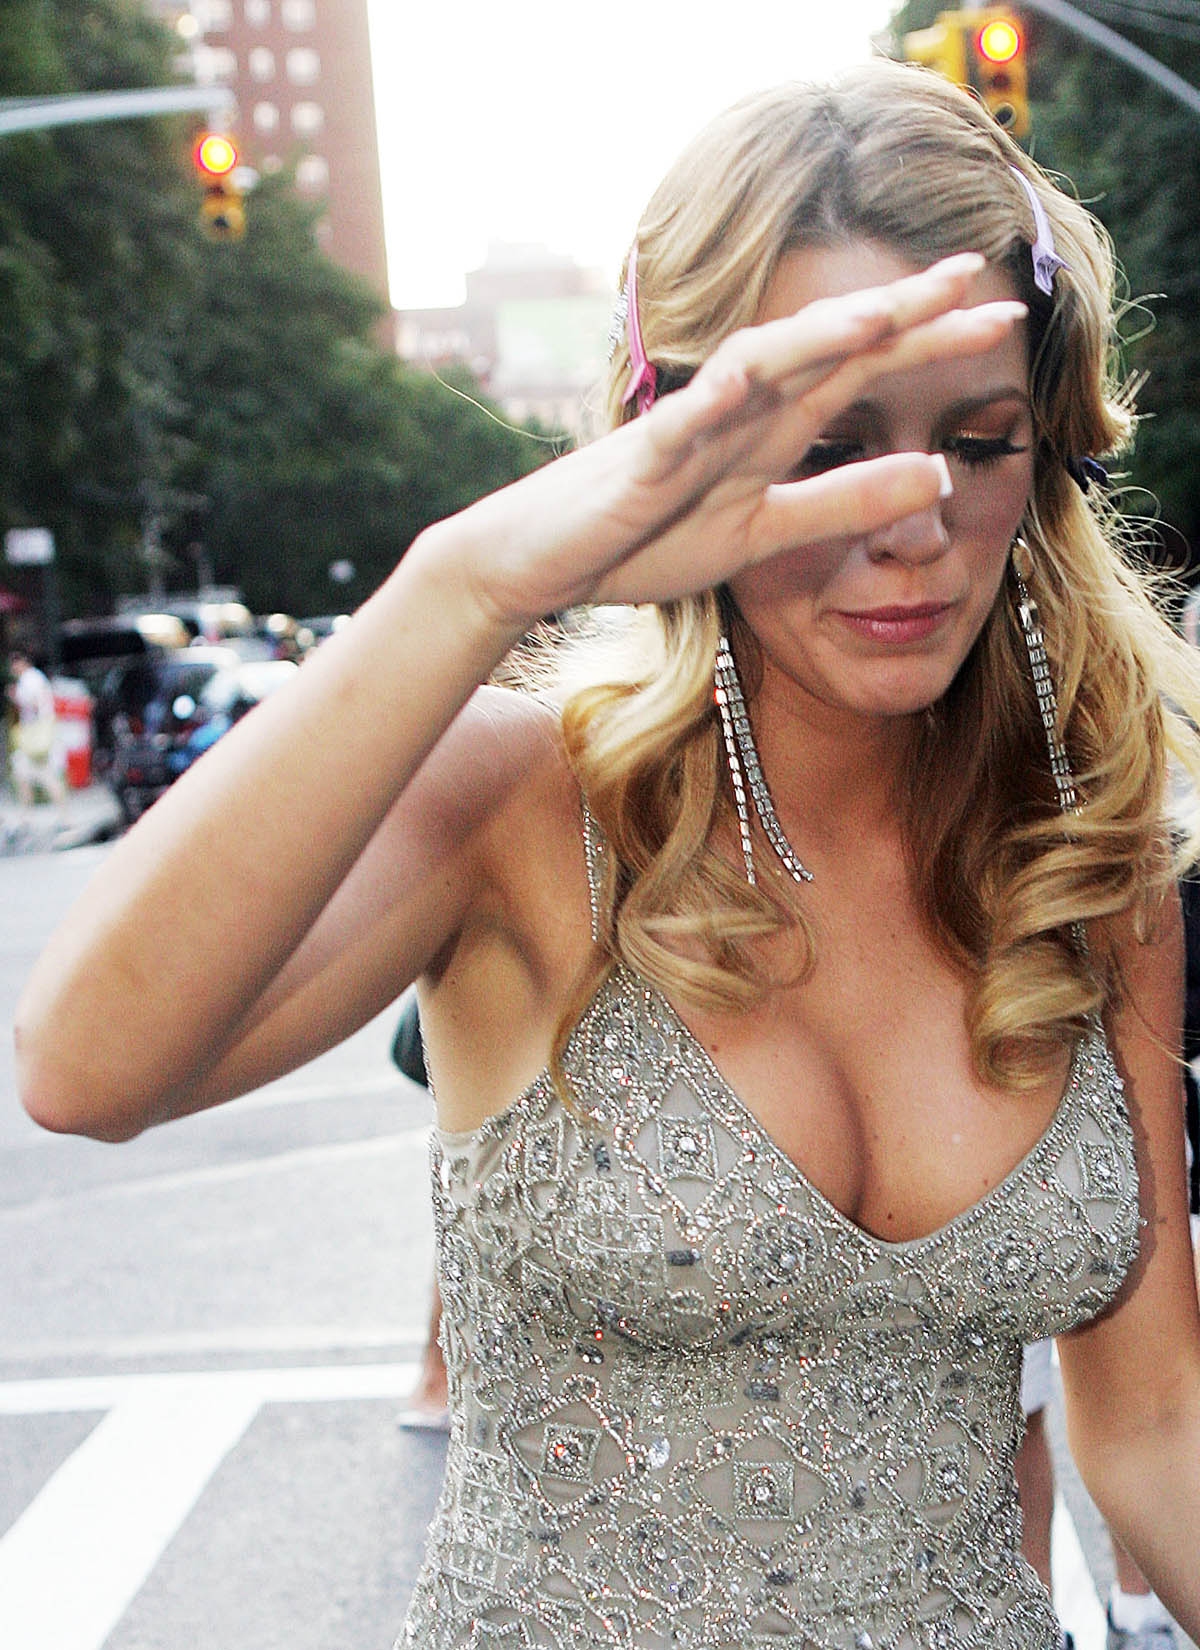 Here are the pics of blake lively s nip slip i ve also included